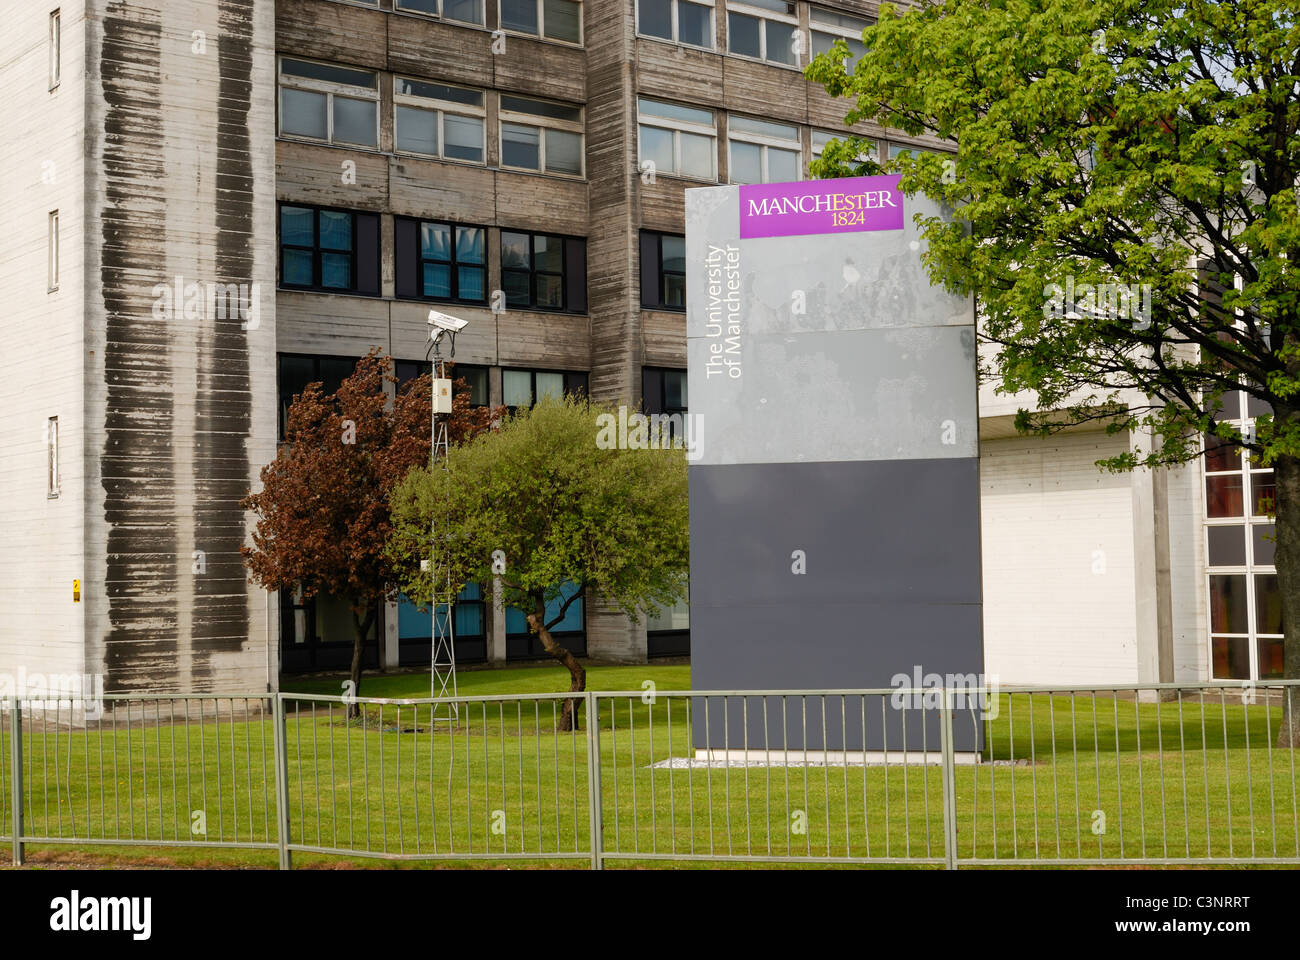 Manchester University building situated in central Manchester next to the Mancunian Way. - Stock Image